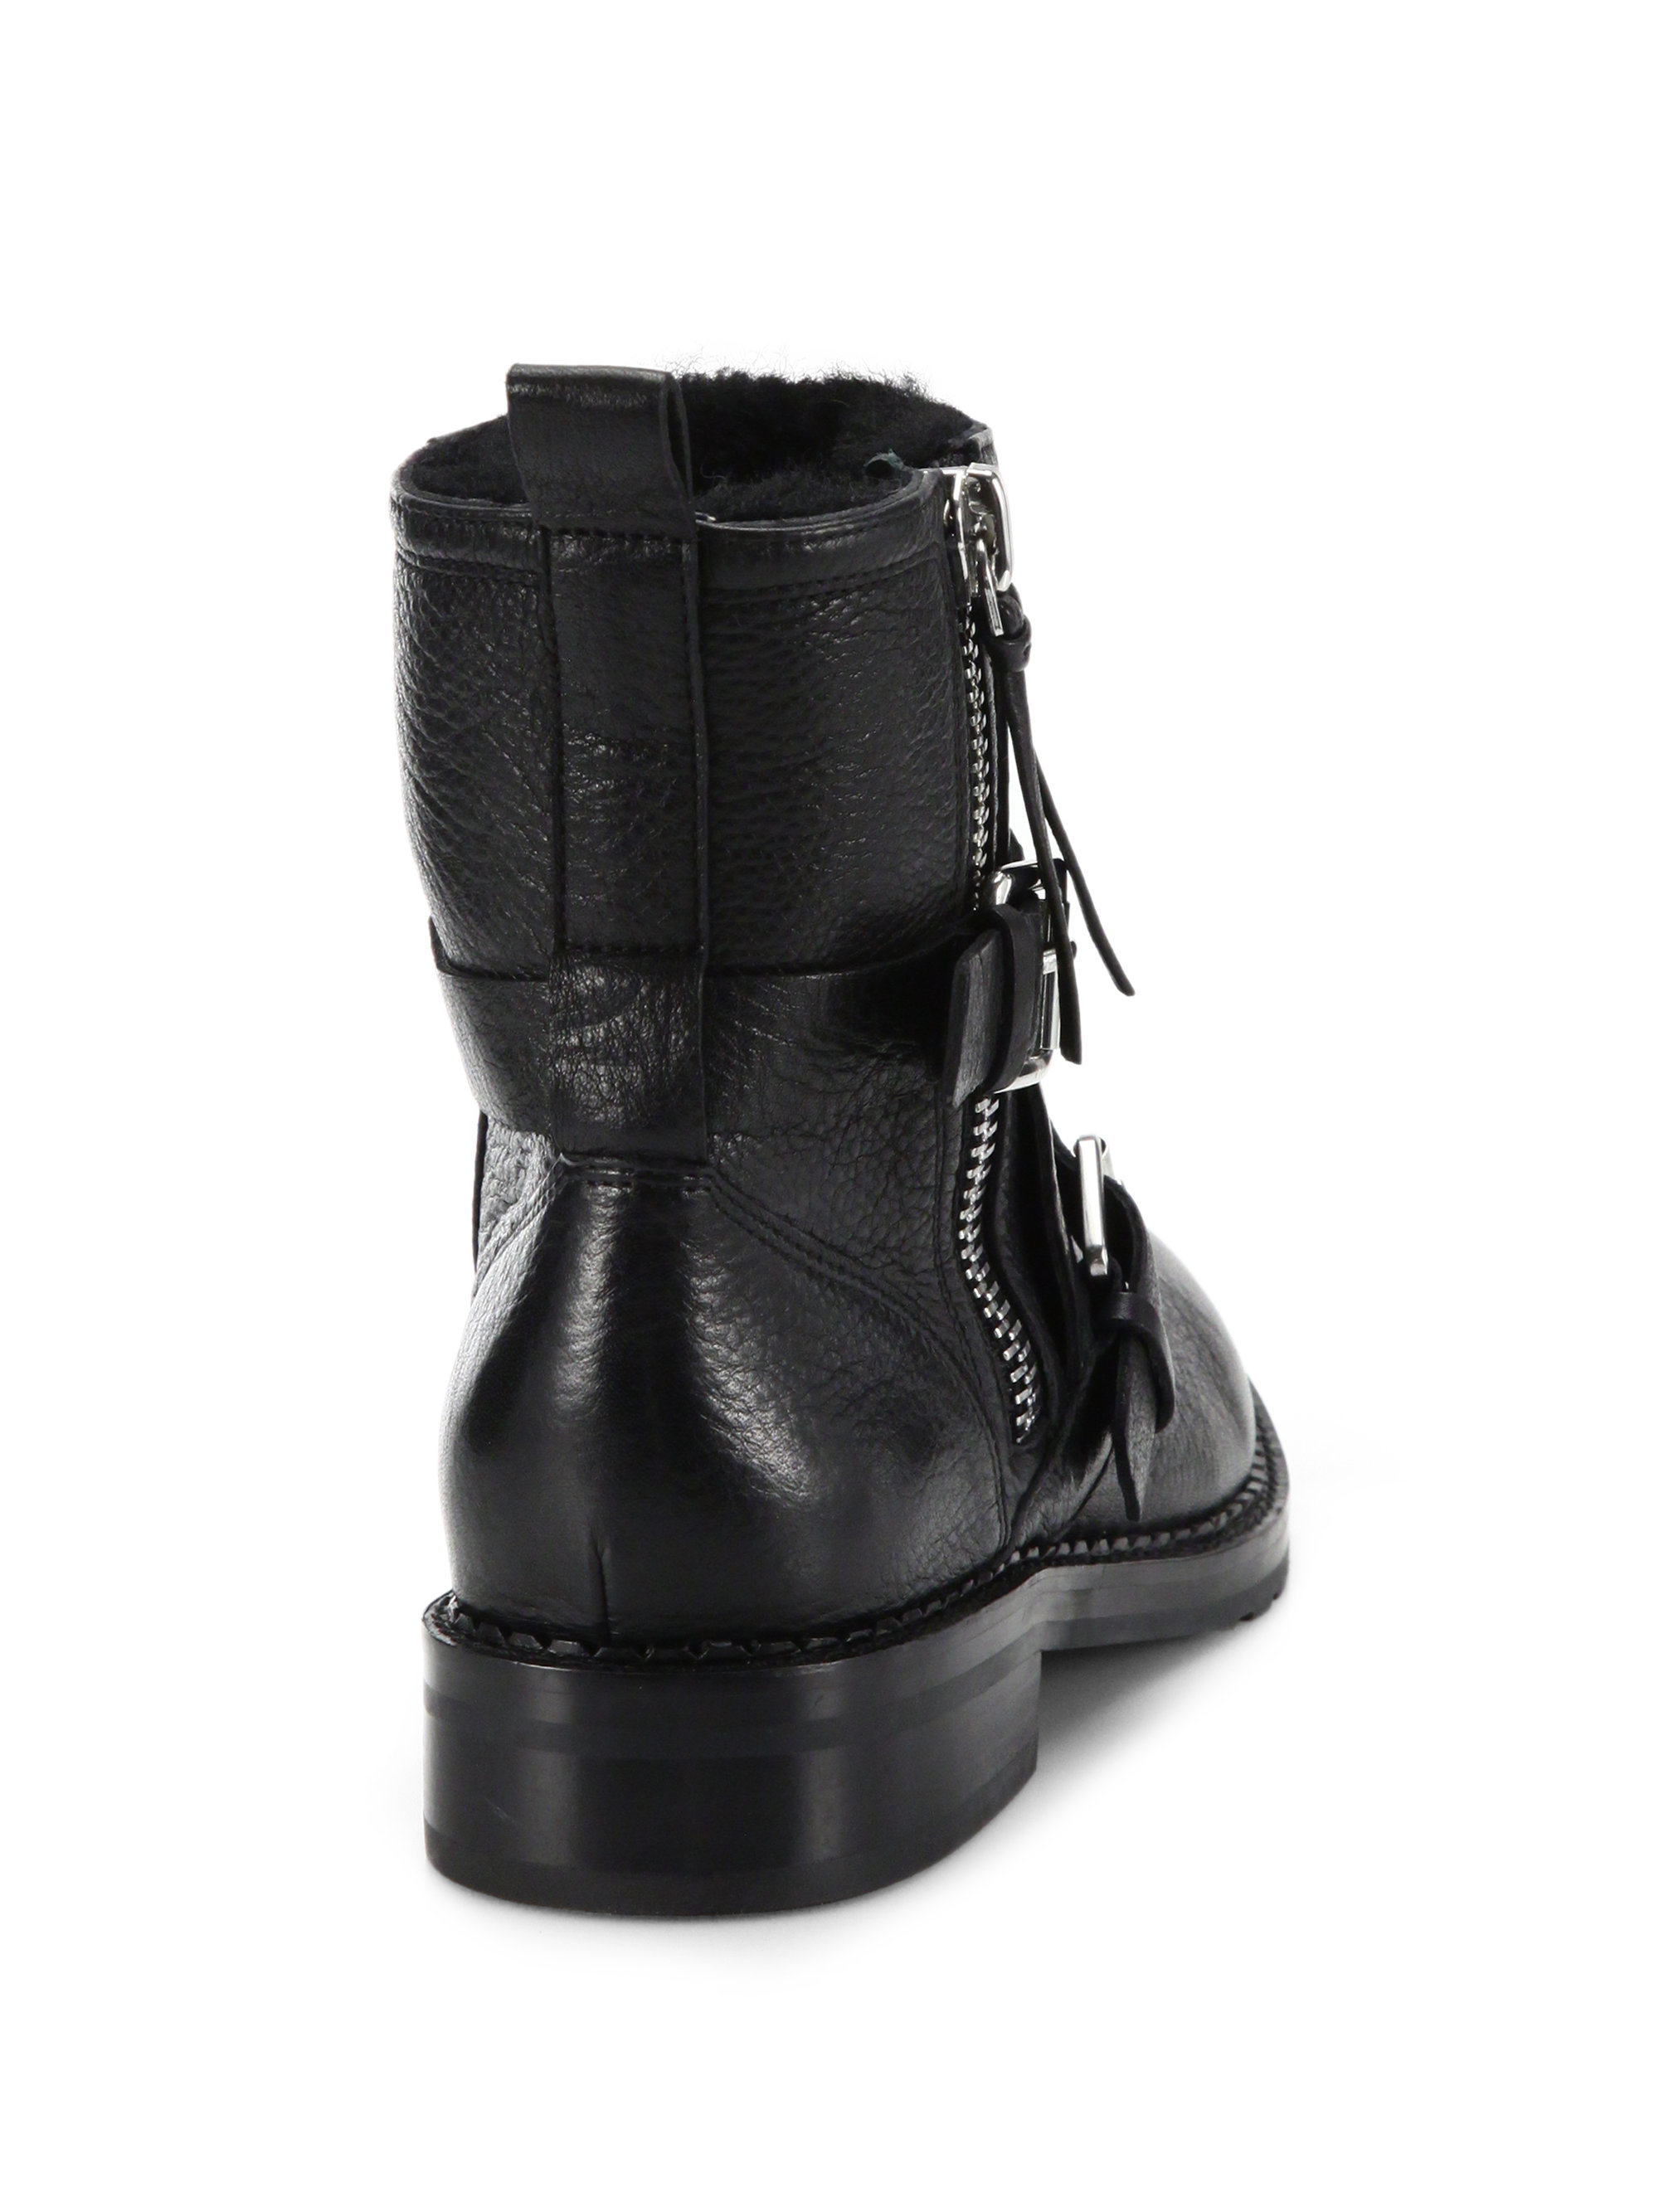 cheap sale footlocker cheap sale newest Rebecca Minkoff Leather Moto Ankle Boots buy cheap order sale cheapest price 6b6AQ